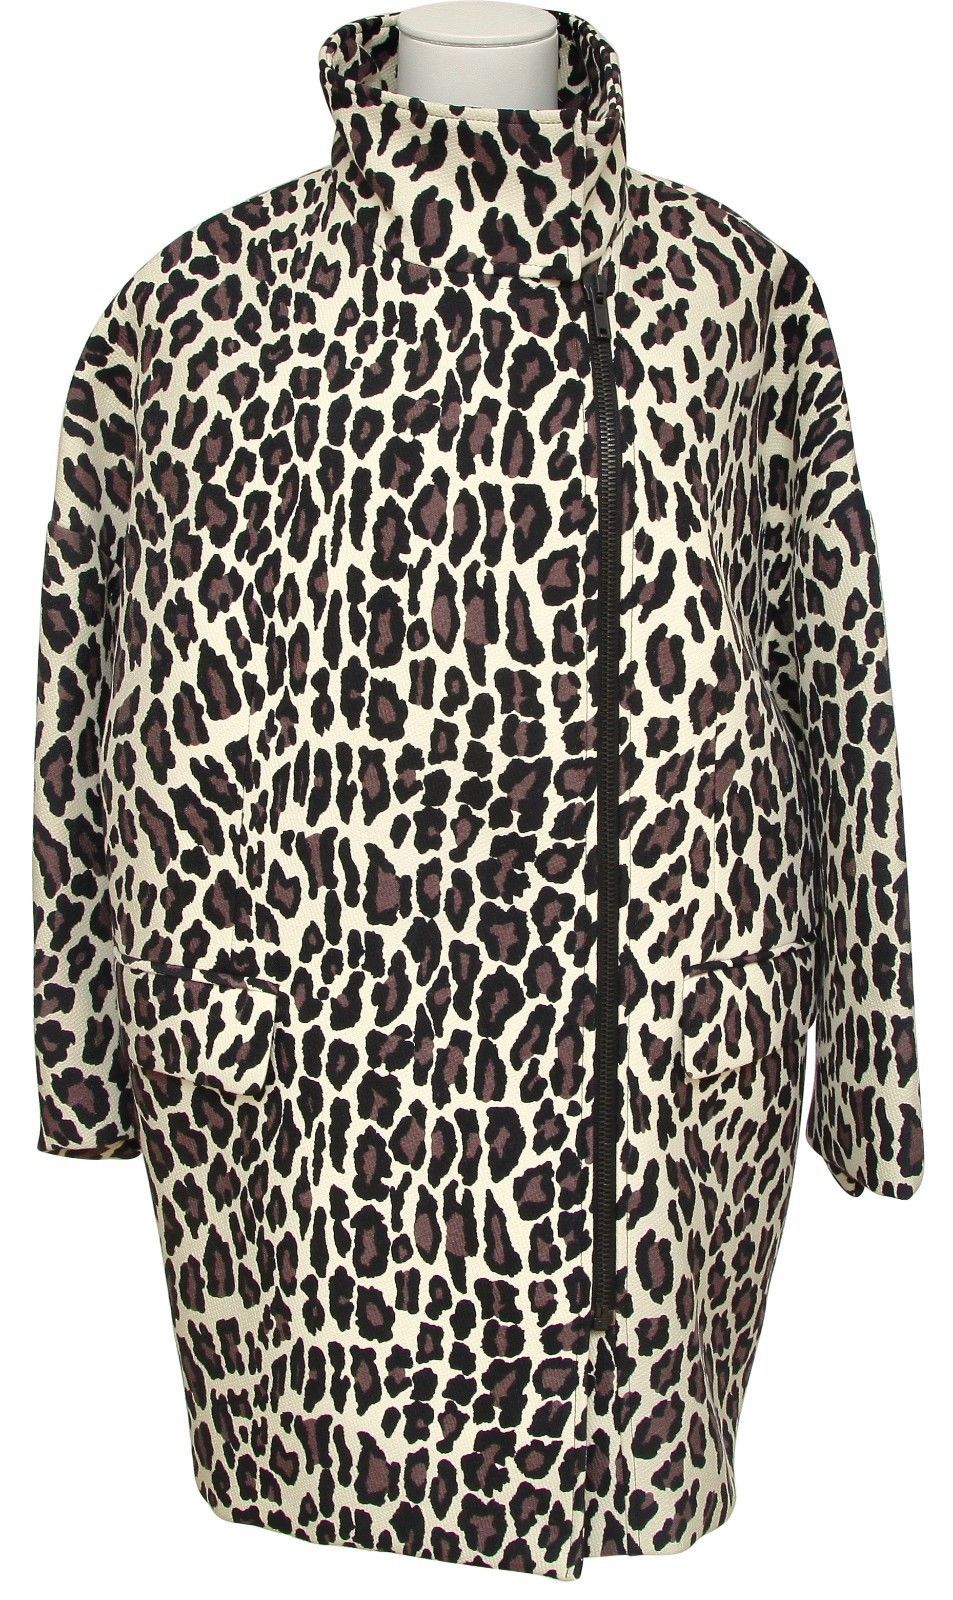 Primary image for MSGM Coat Jacket Knee Length Animal Print Wool Long Sleeve Zip Closure 40 BNWT